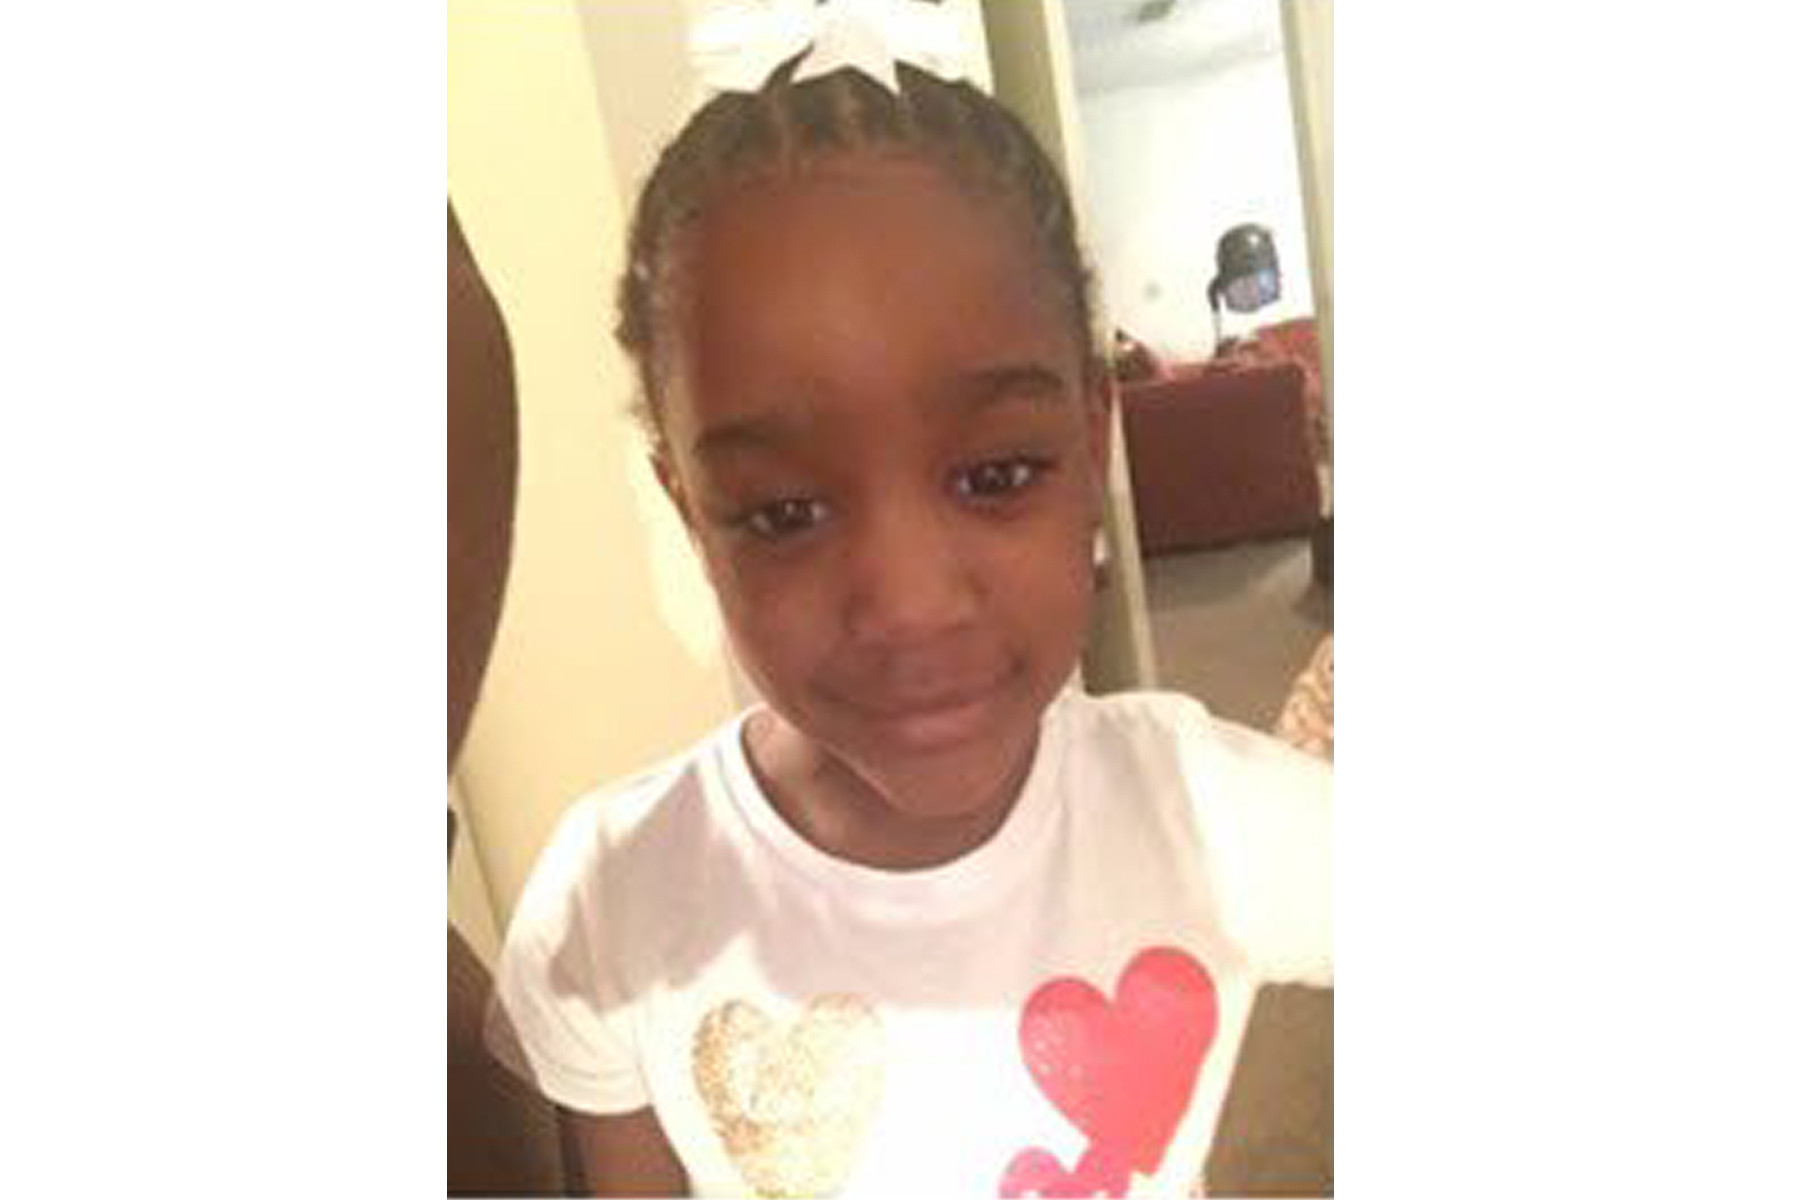 Amber Alert issued for 5-year-old Jacksonville girl who vanished from her bedroom overnight